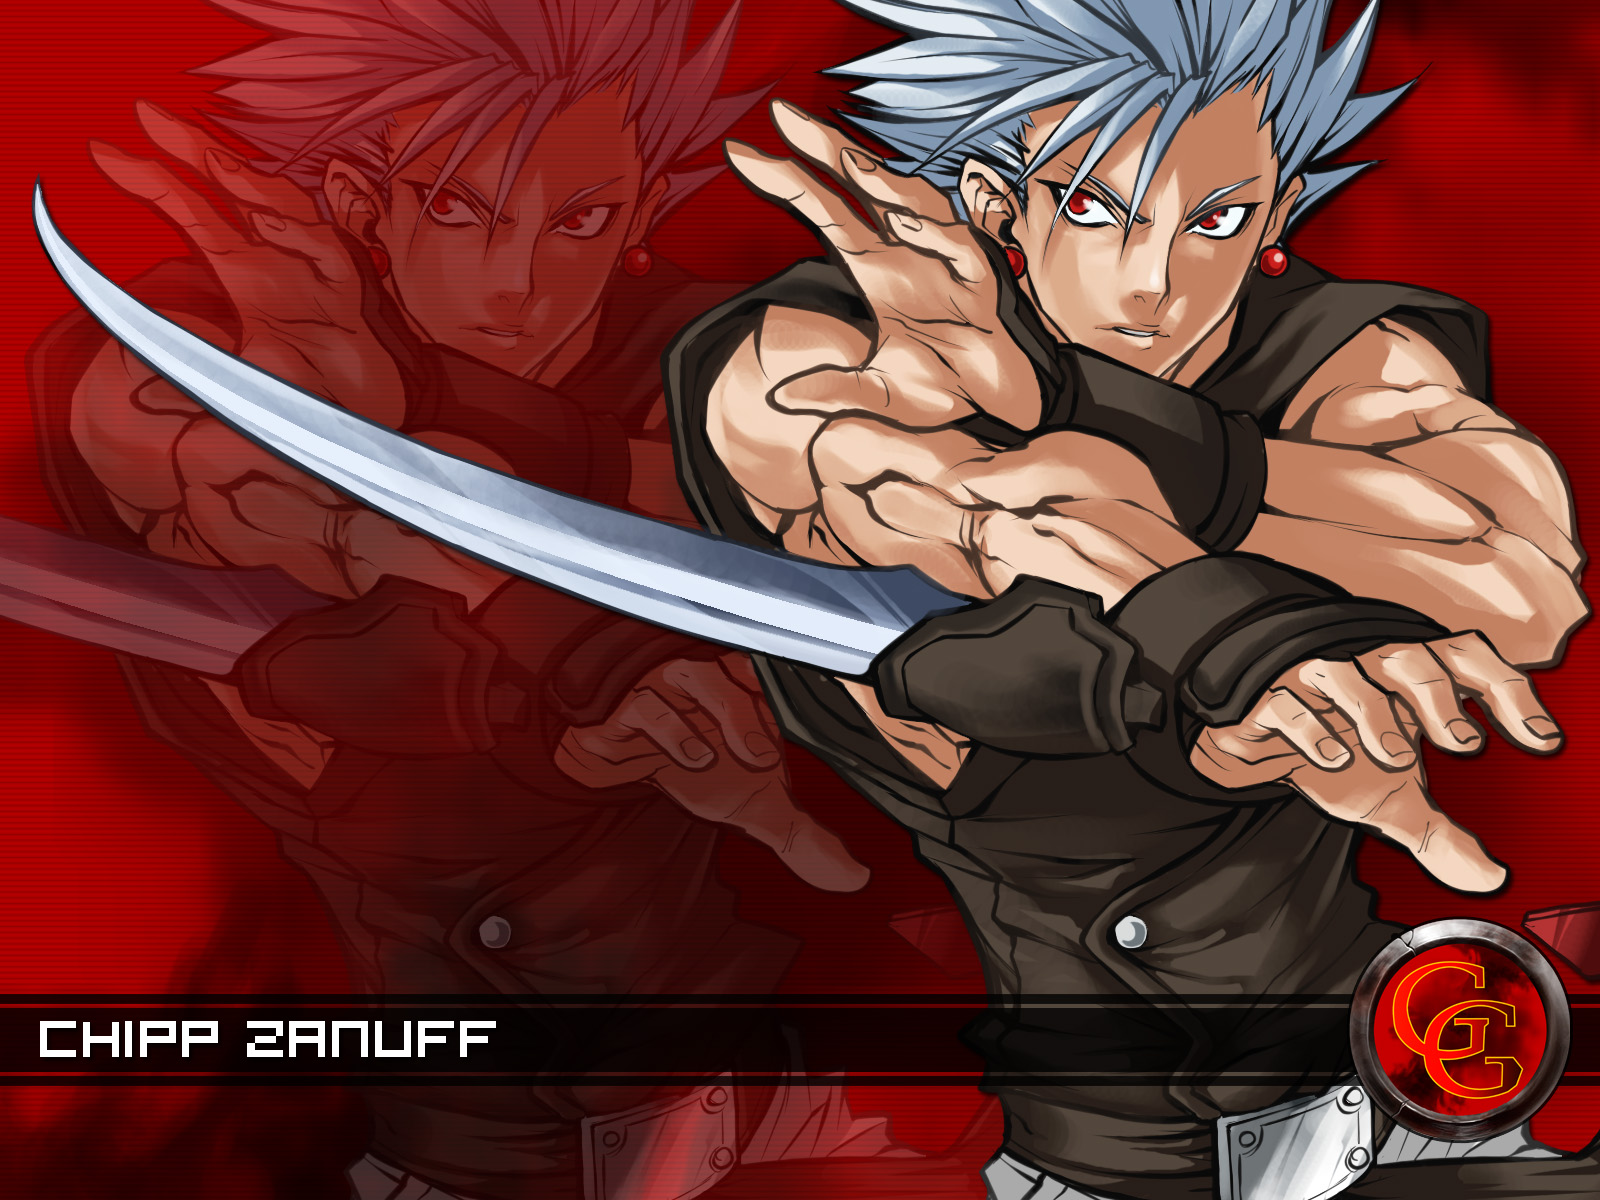 Gear Wallpaper Hd Chipp Zanuff Guilty Gear